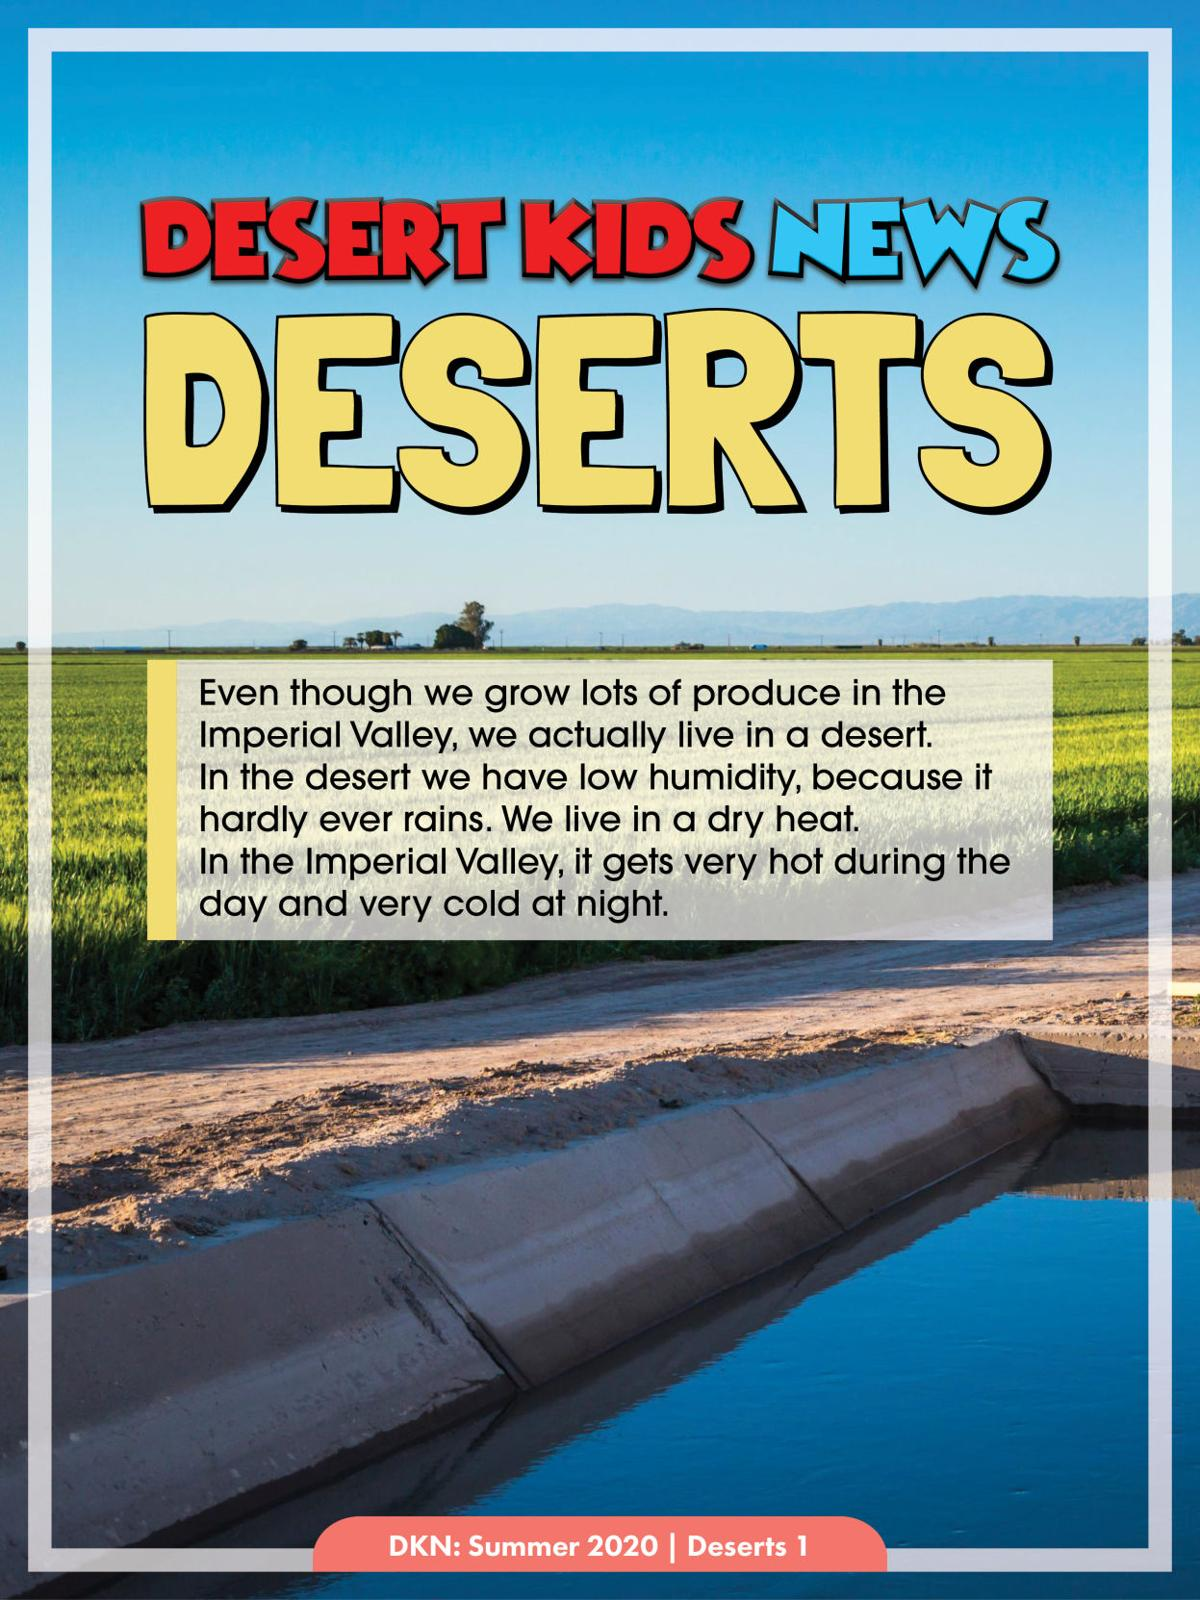 DKN: Deserts (1 of 3)